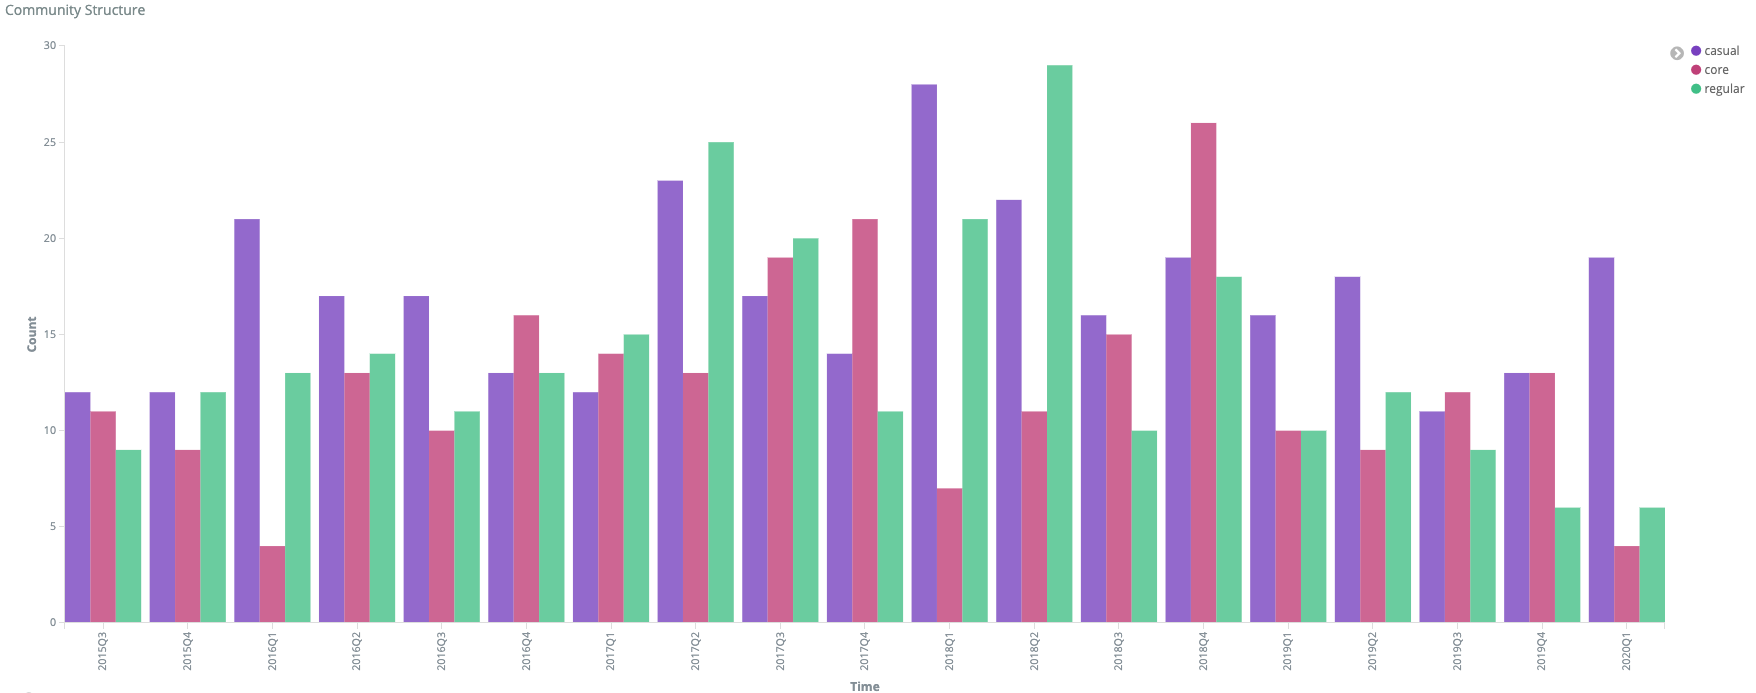 Chart showing contributions over time by type of contributor - core, regular or casual.